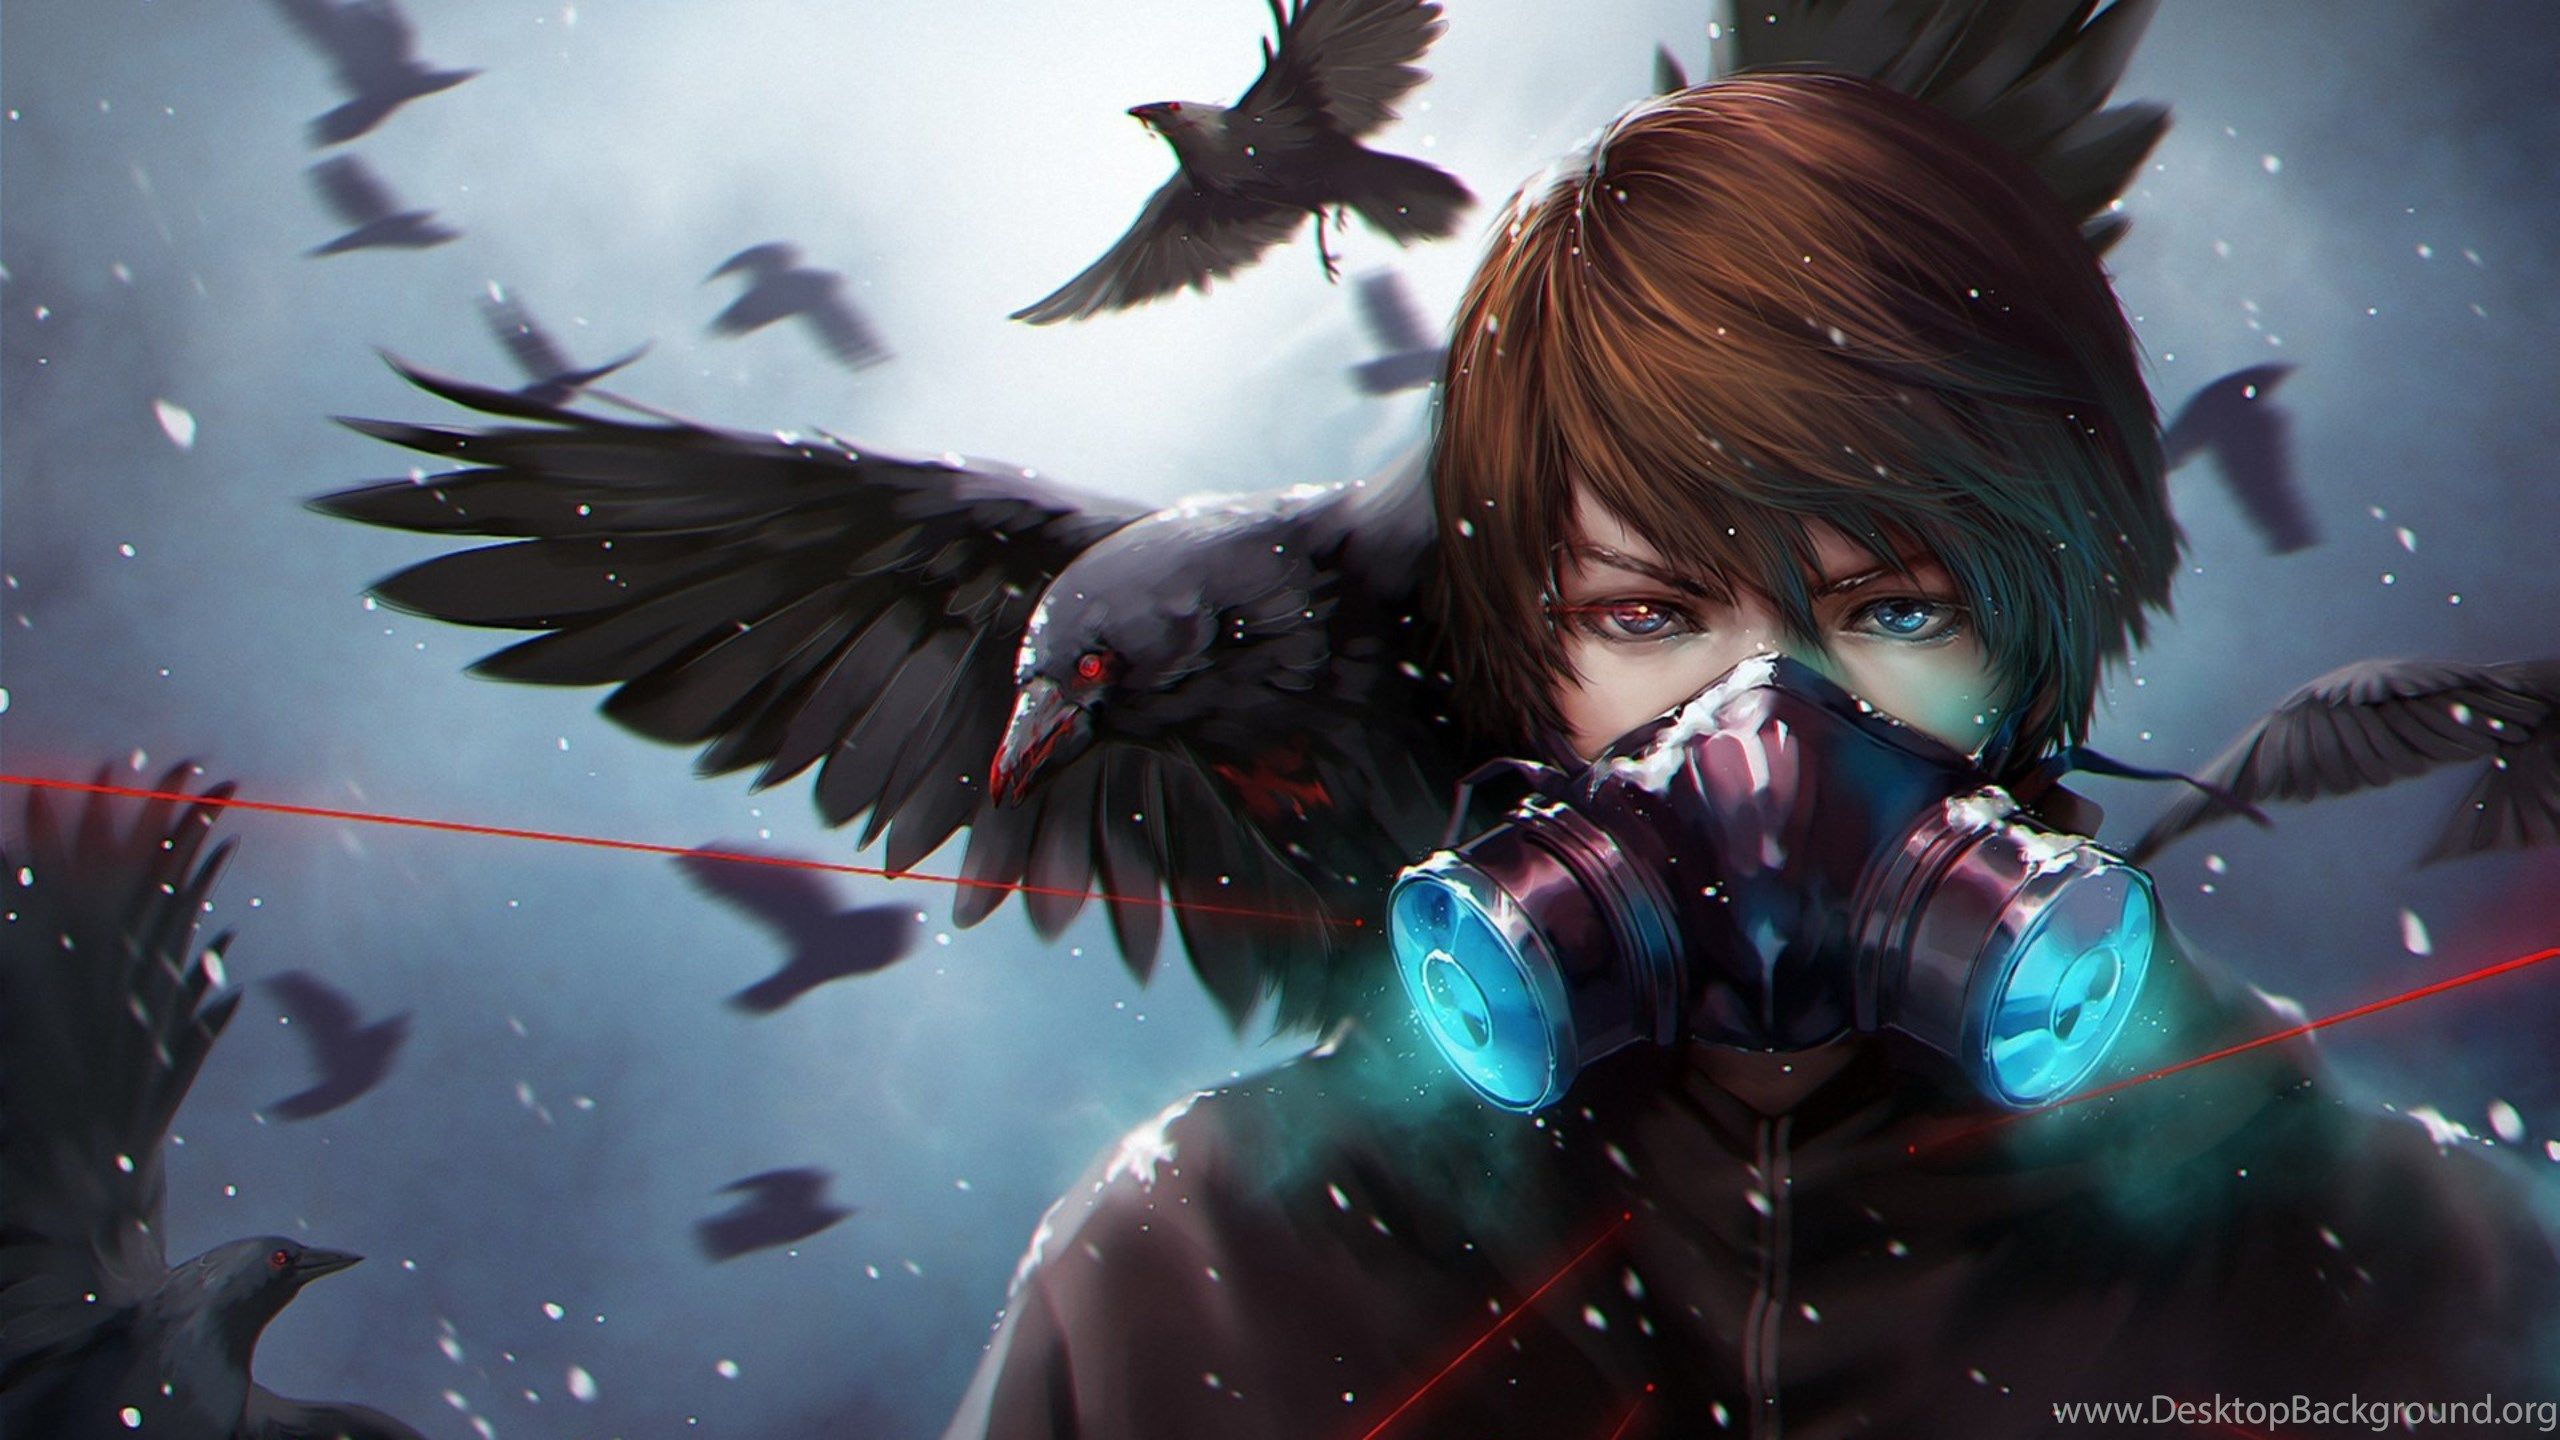 Epic Anime 2560x1440 Wallpapers Wallpaper Cave